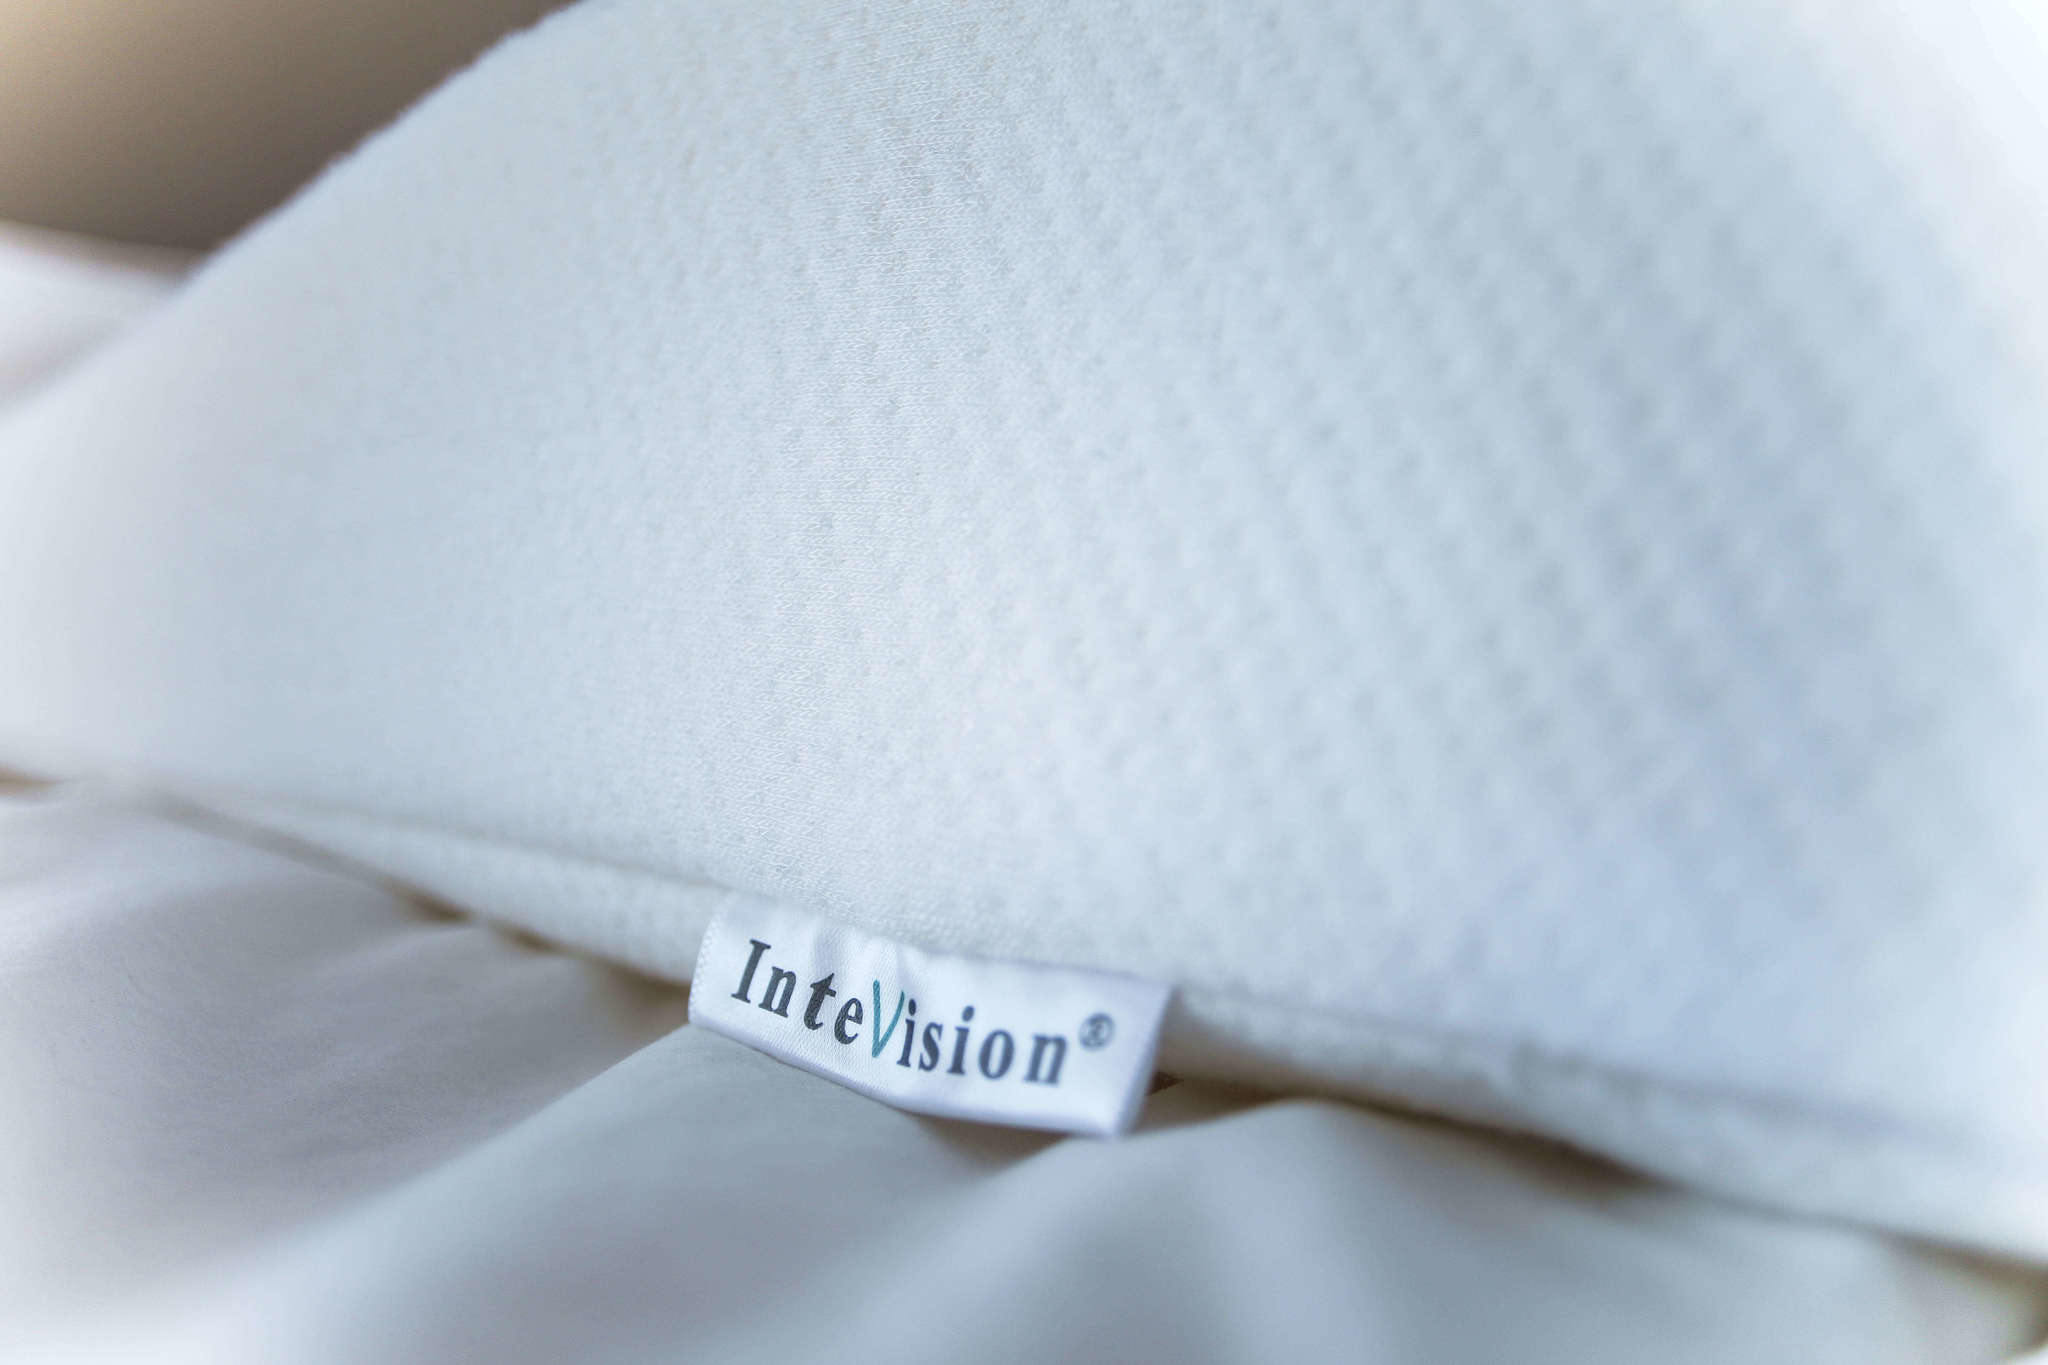 Review of the InteVision Foam Wedge Pillow